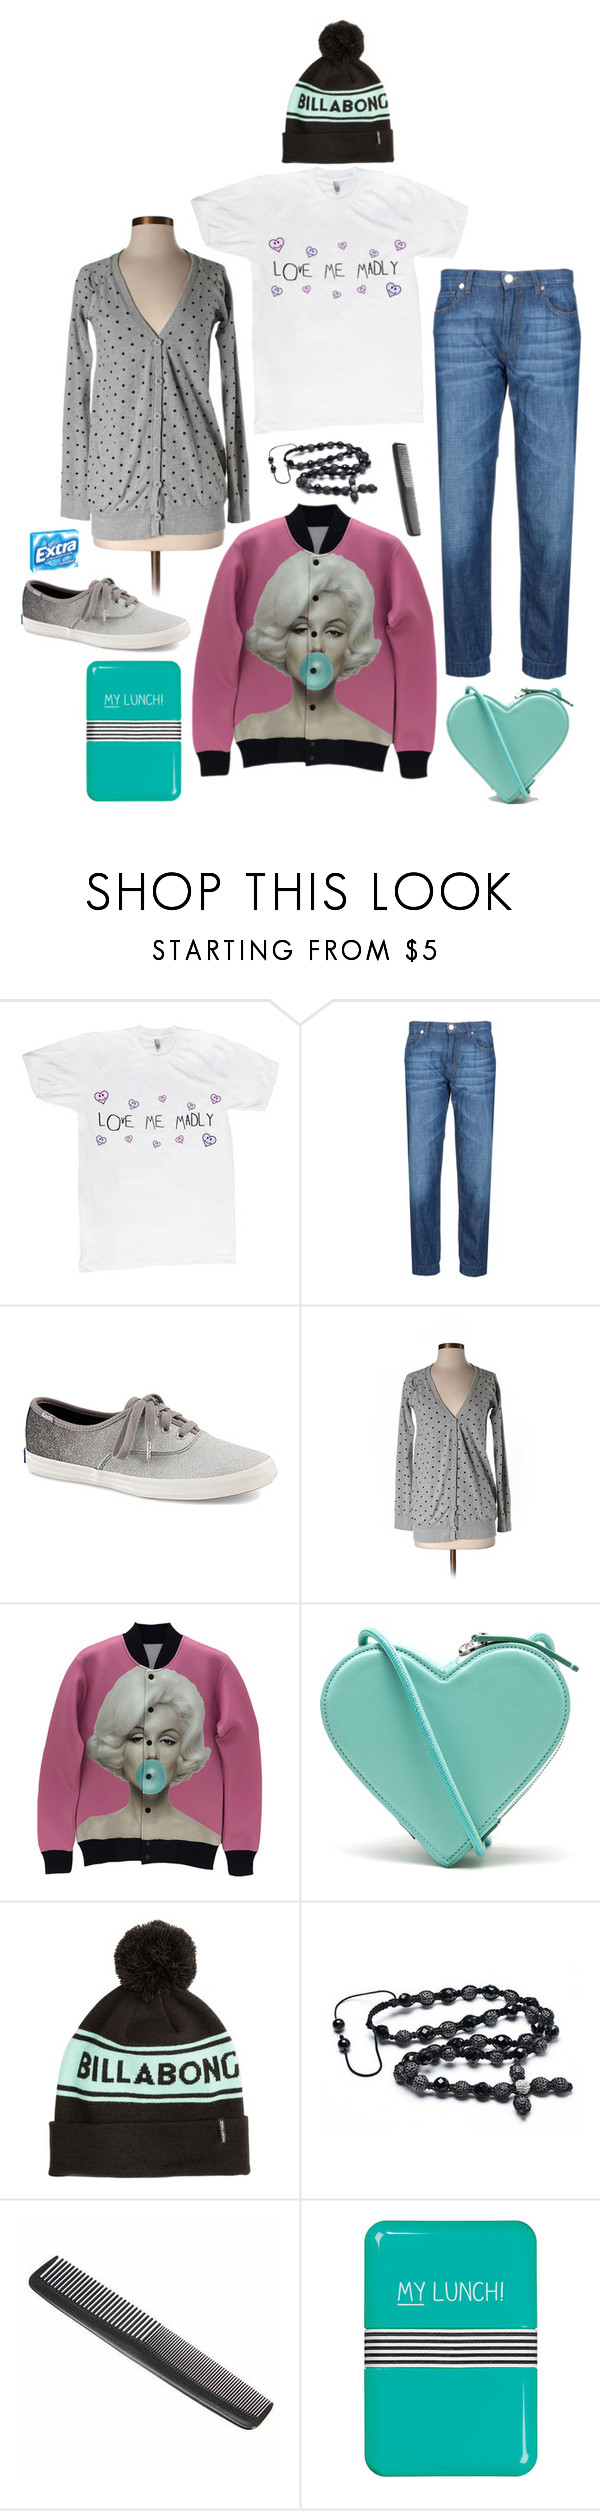 """""""Love me madly"""" by perpetto ❤ liked on Polyvore featuring George J. Love, Keds, Truly Madly Deeply, Christopher Kane, Billabong, Bling Jewelry, Happy Jackson, women's clothing, women and female"""